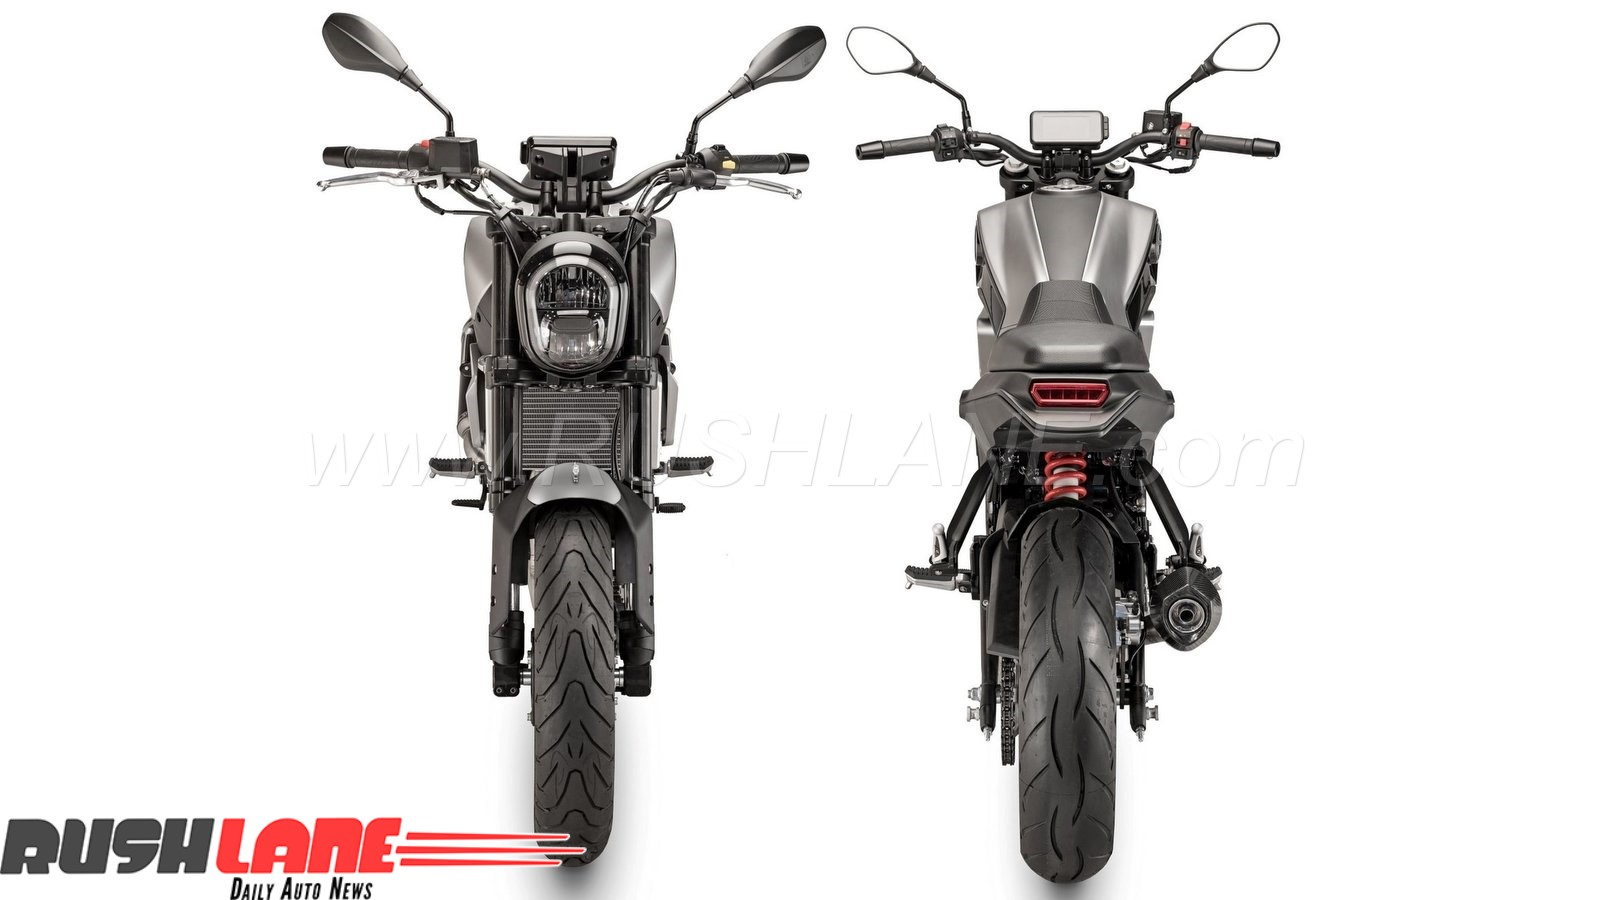 Benelli Leoncino 250 launch in India confirmed - Takes on KTM Duke